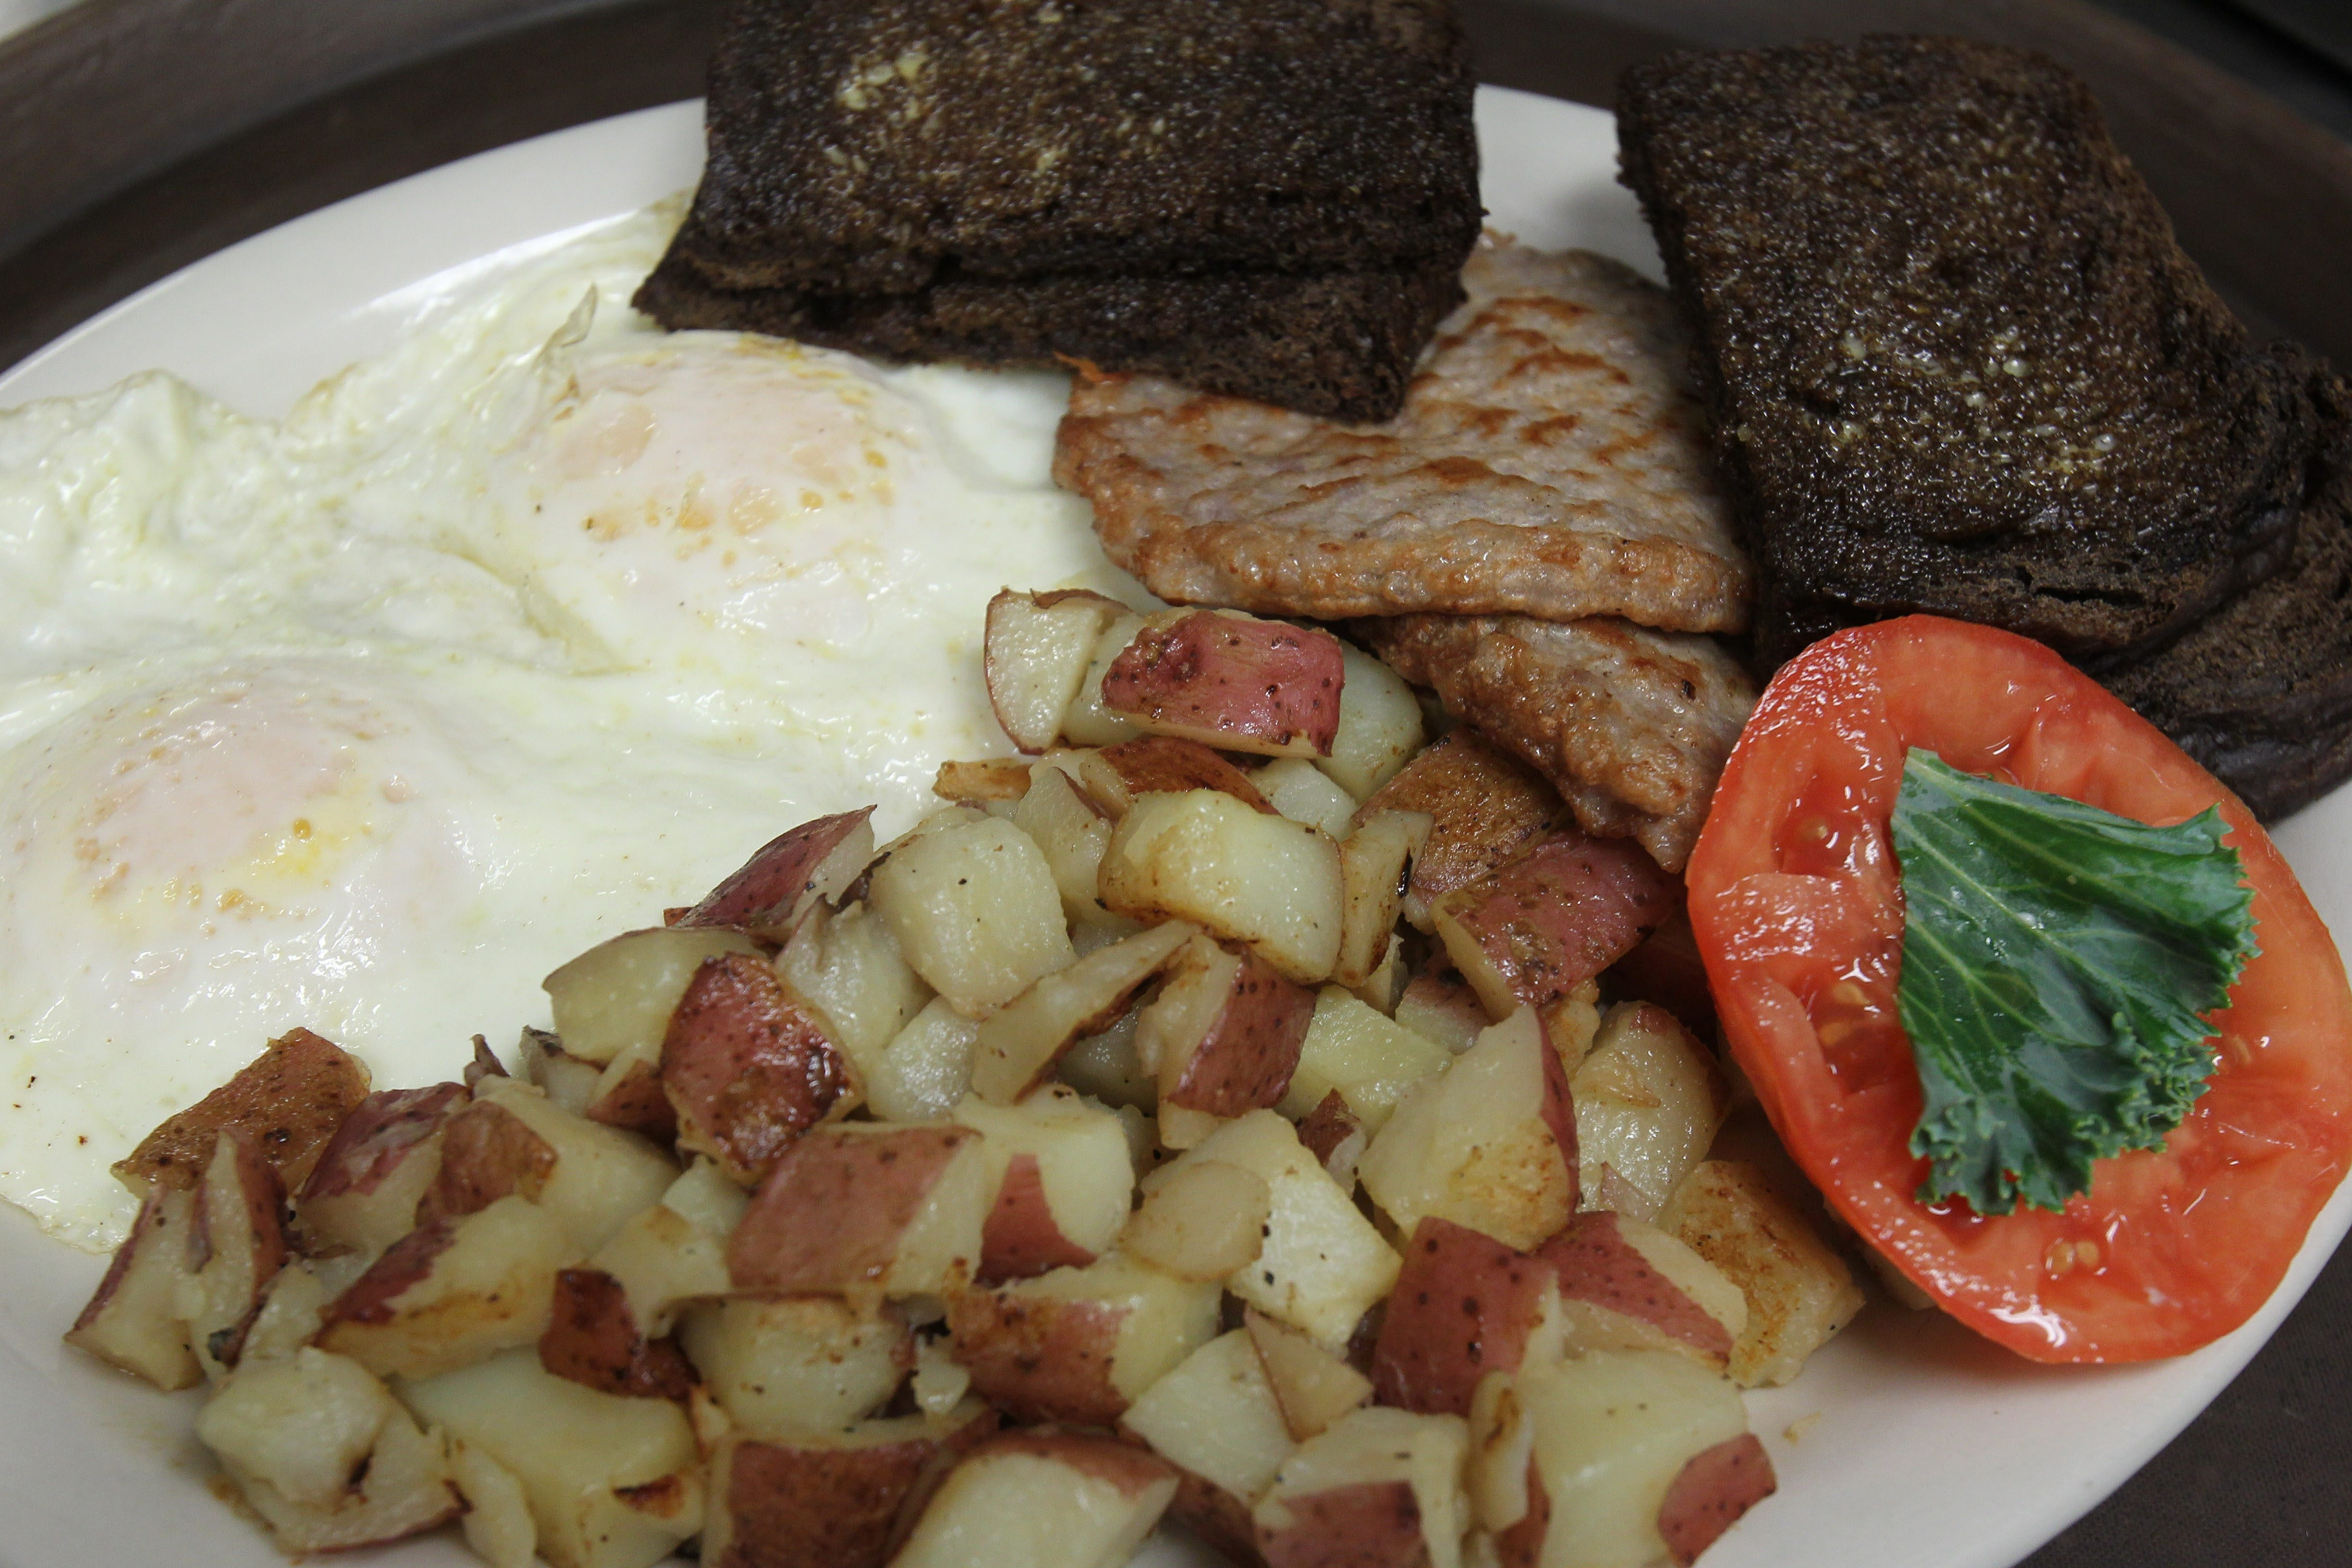 This breakfast at Gordie Harper's Bazaar in Newfane features eggs, sausage, potatoes and toast.